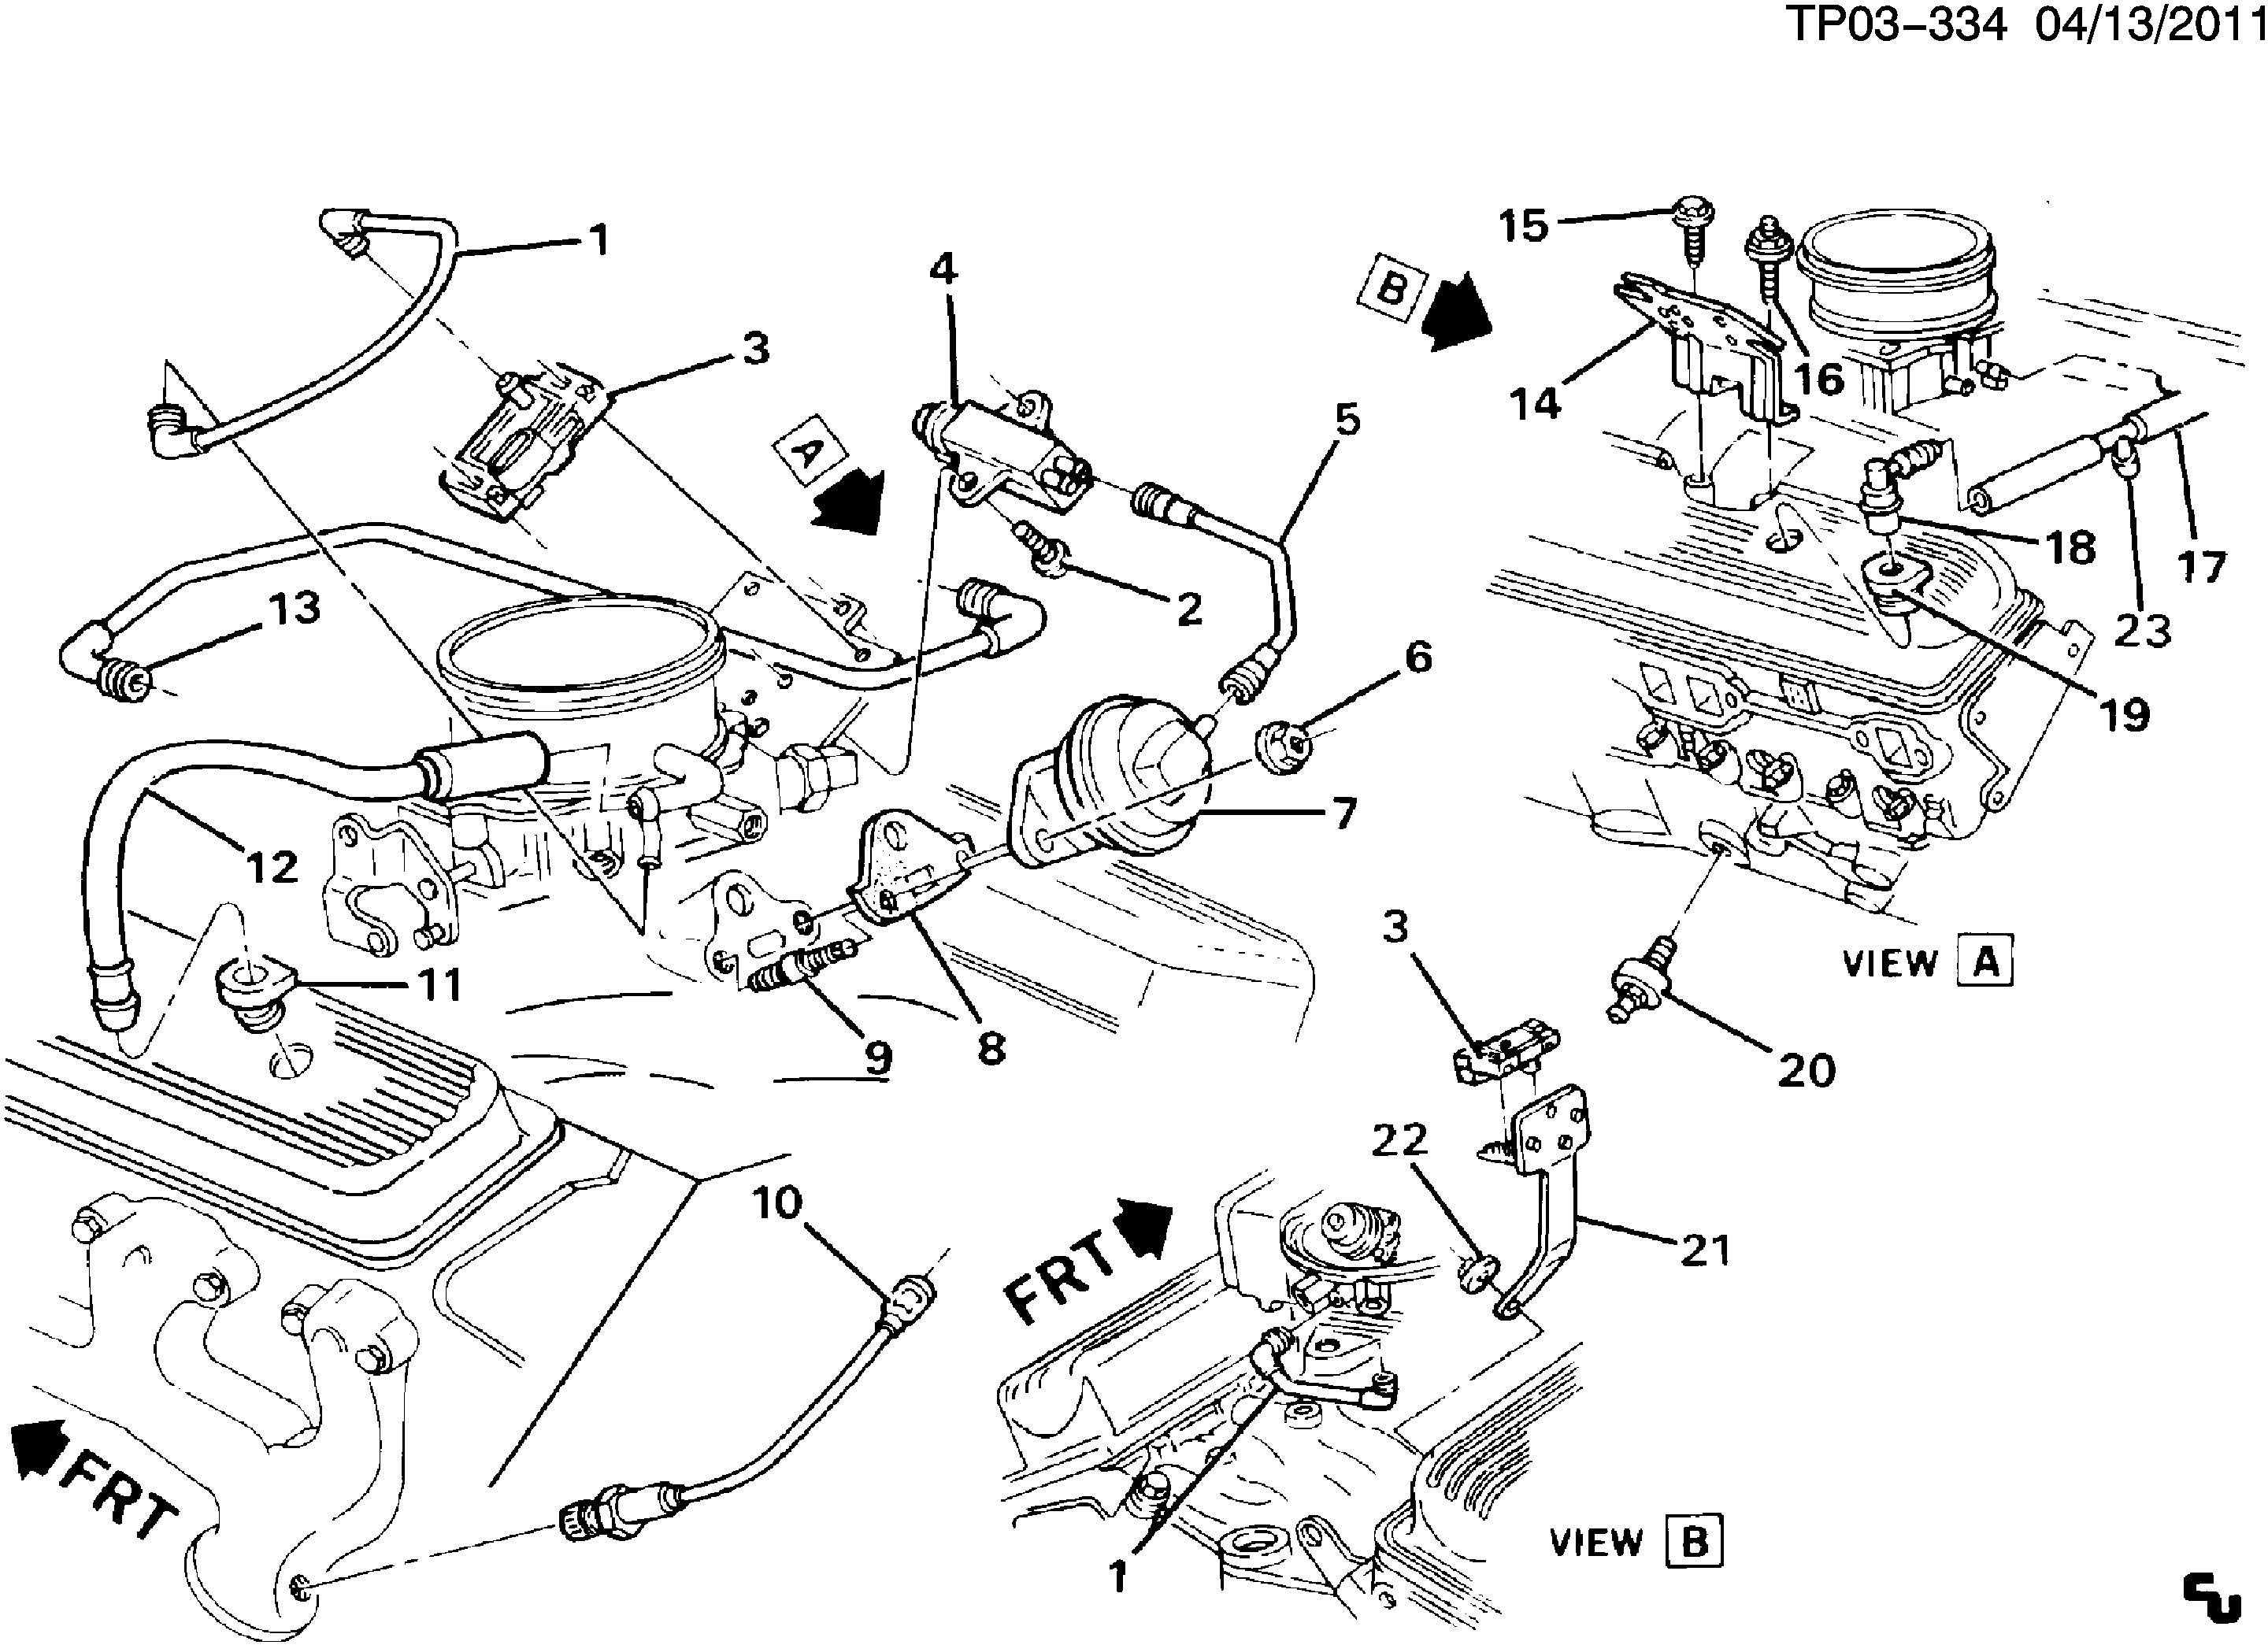 5 7 350 Chevy Engine Diagram Everything About Wiring Vacuum Hose Line Library Rh 89 Codingcommunity De 57 Liter